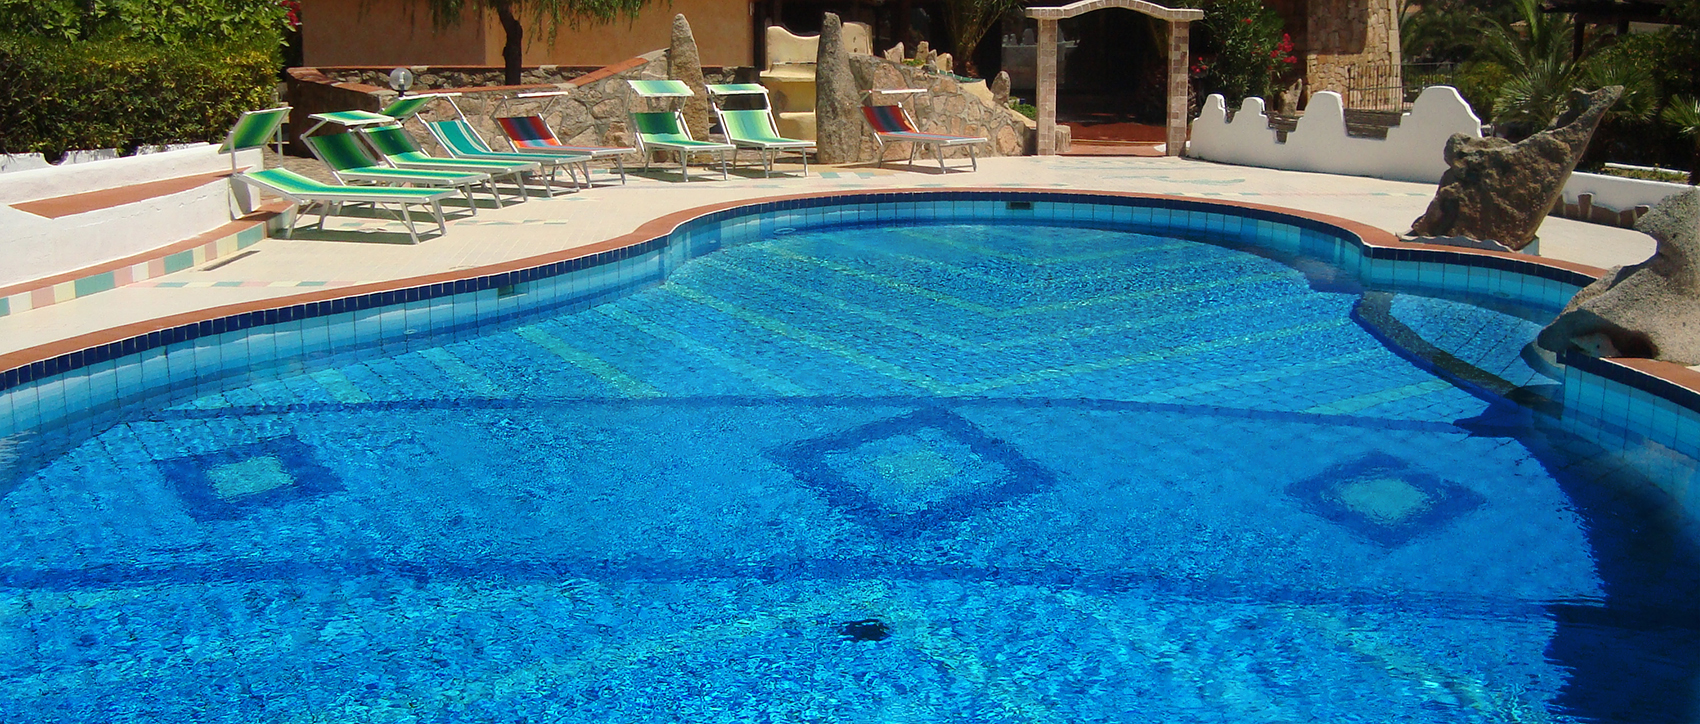 Swimming Pool Service Hayward Ca Pool Repair Danville Ca